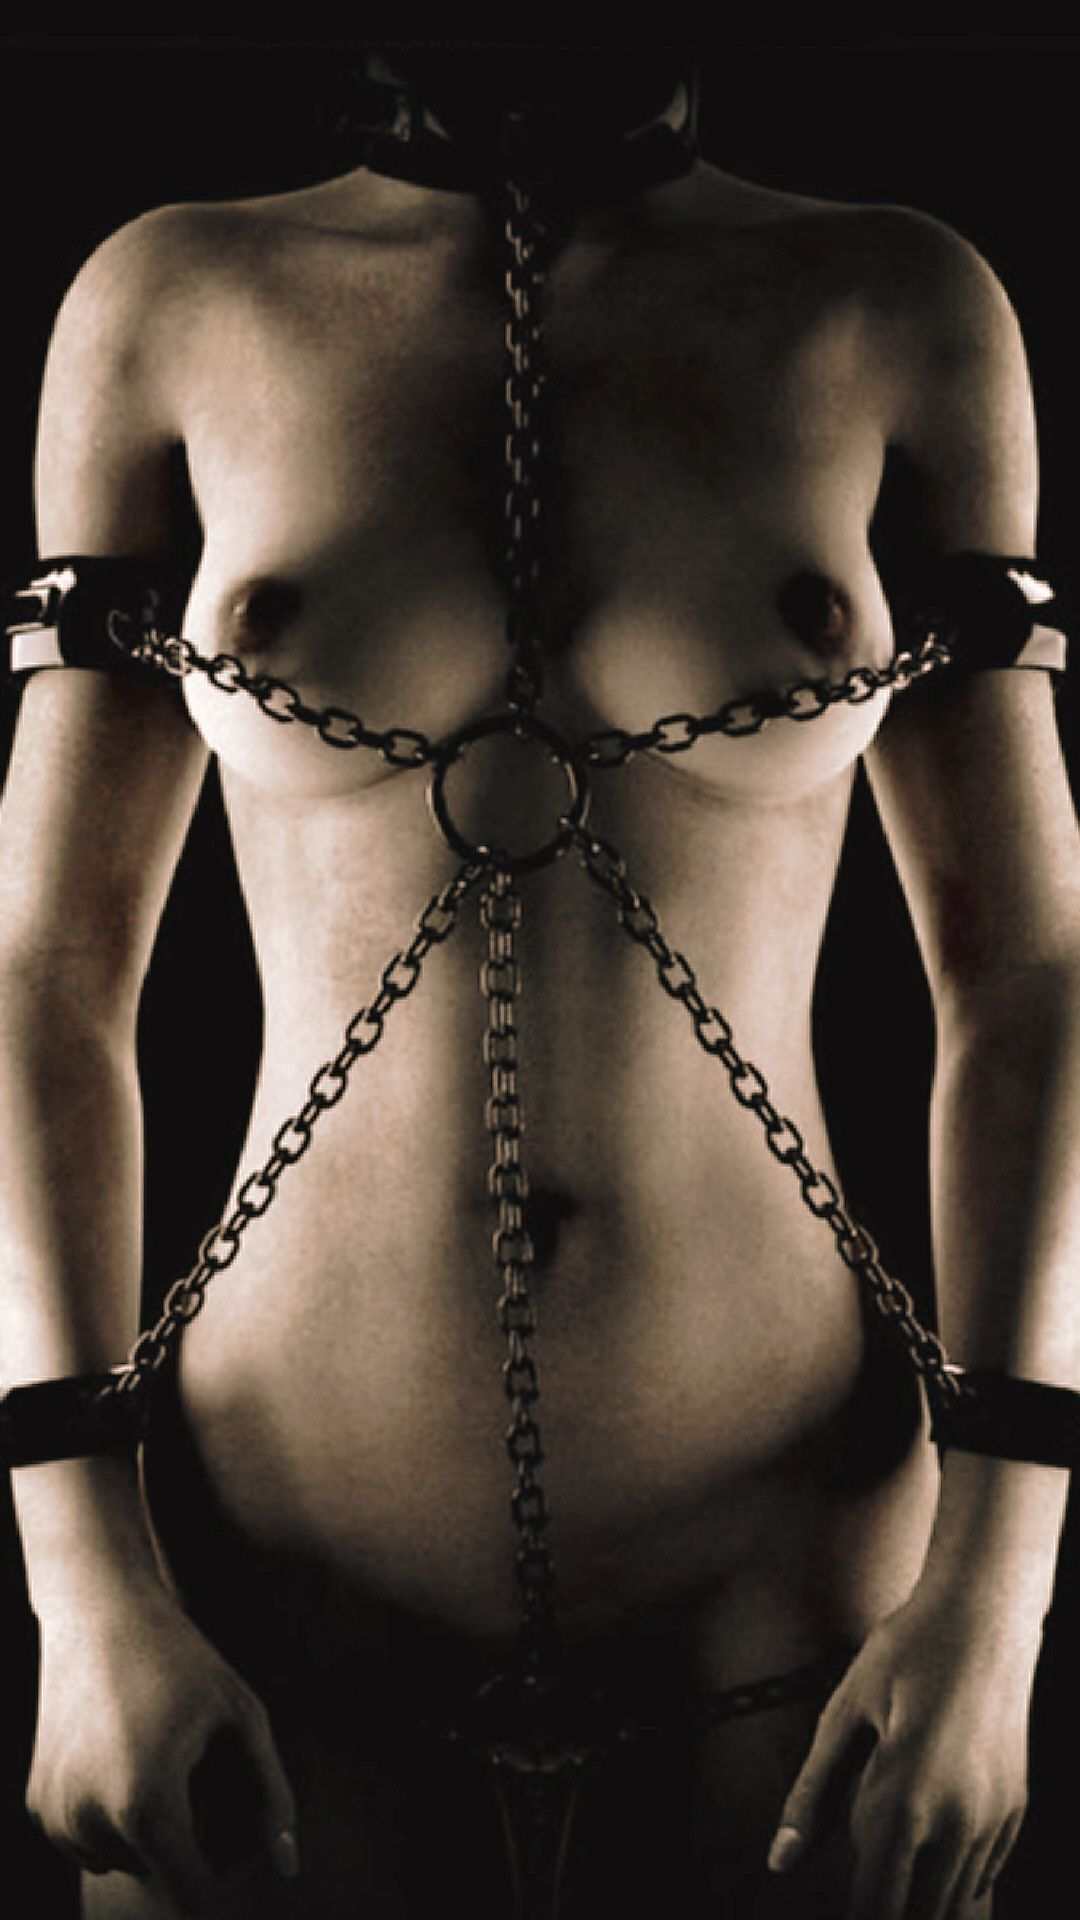 wallpapers Bdsm erotic sexy